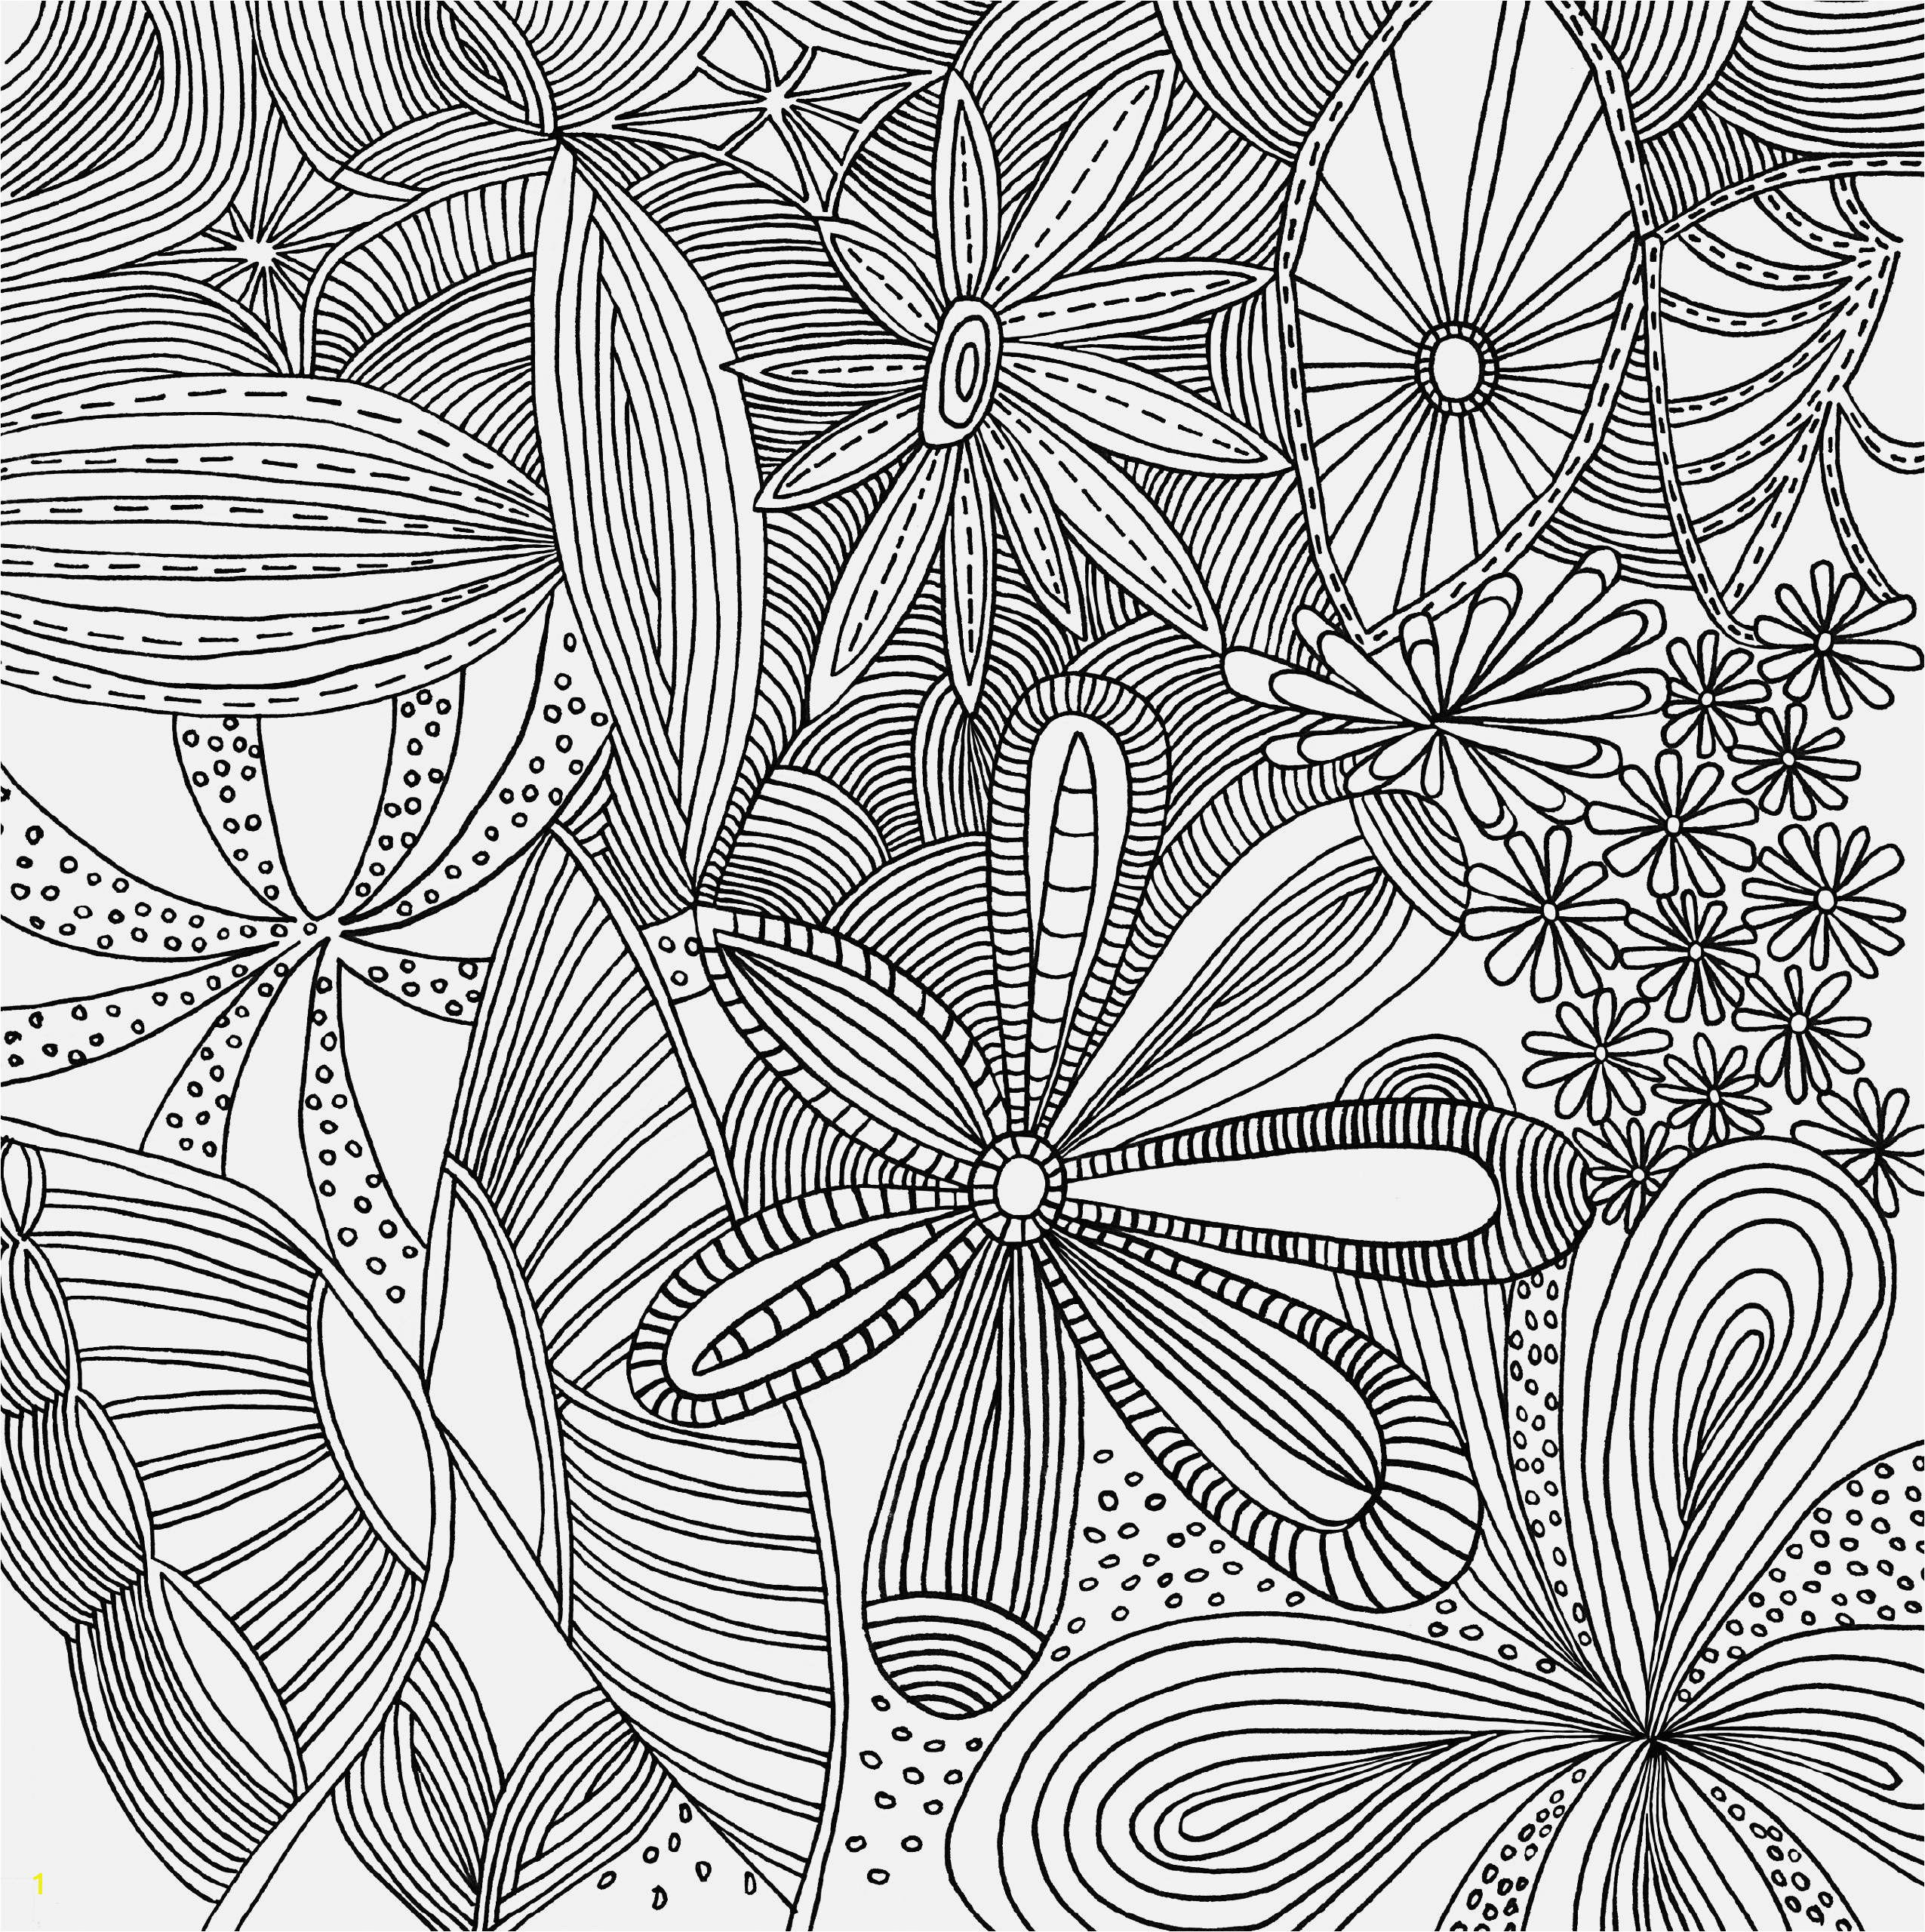 Funny Coloring Pages for Adults Printable Stress Relief Coloring Pages Printable Funny Coloring Pages for